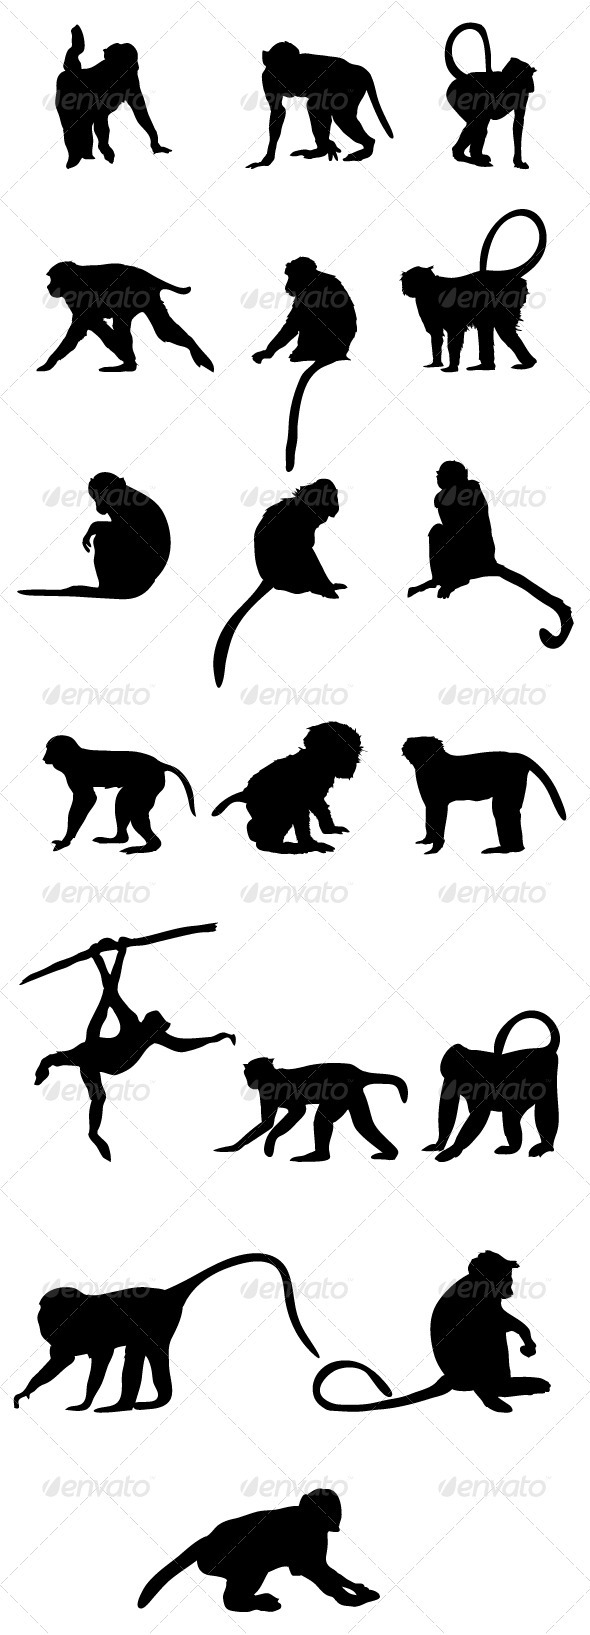 GraphicRiver Monkey Silhouettes 3744430